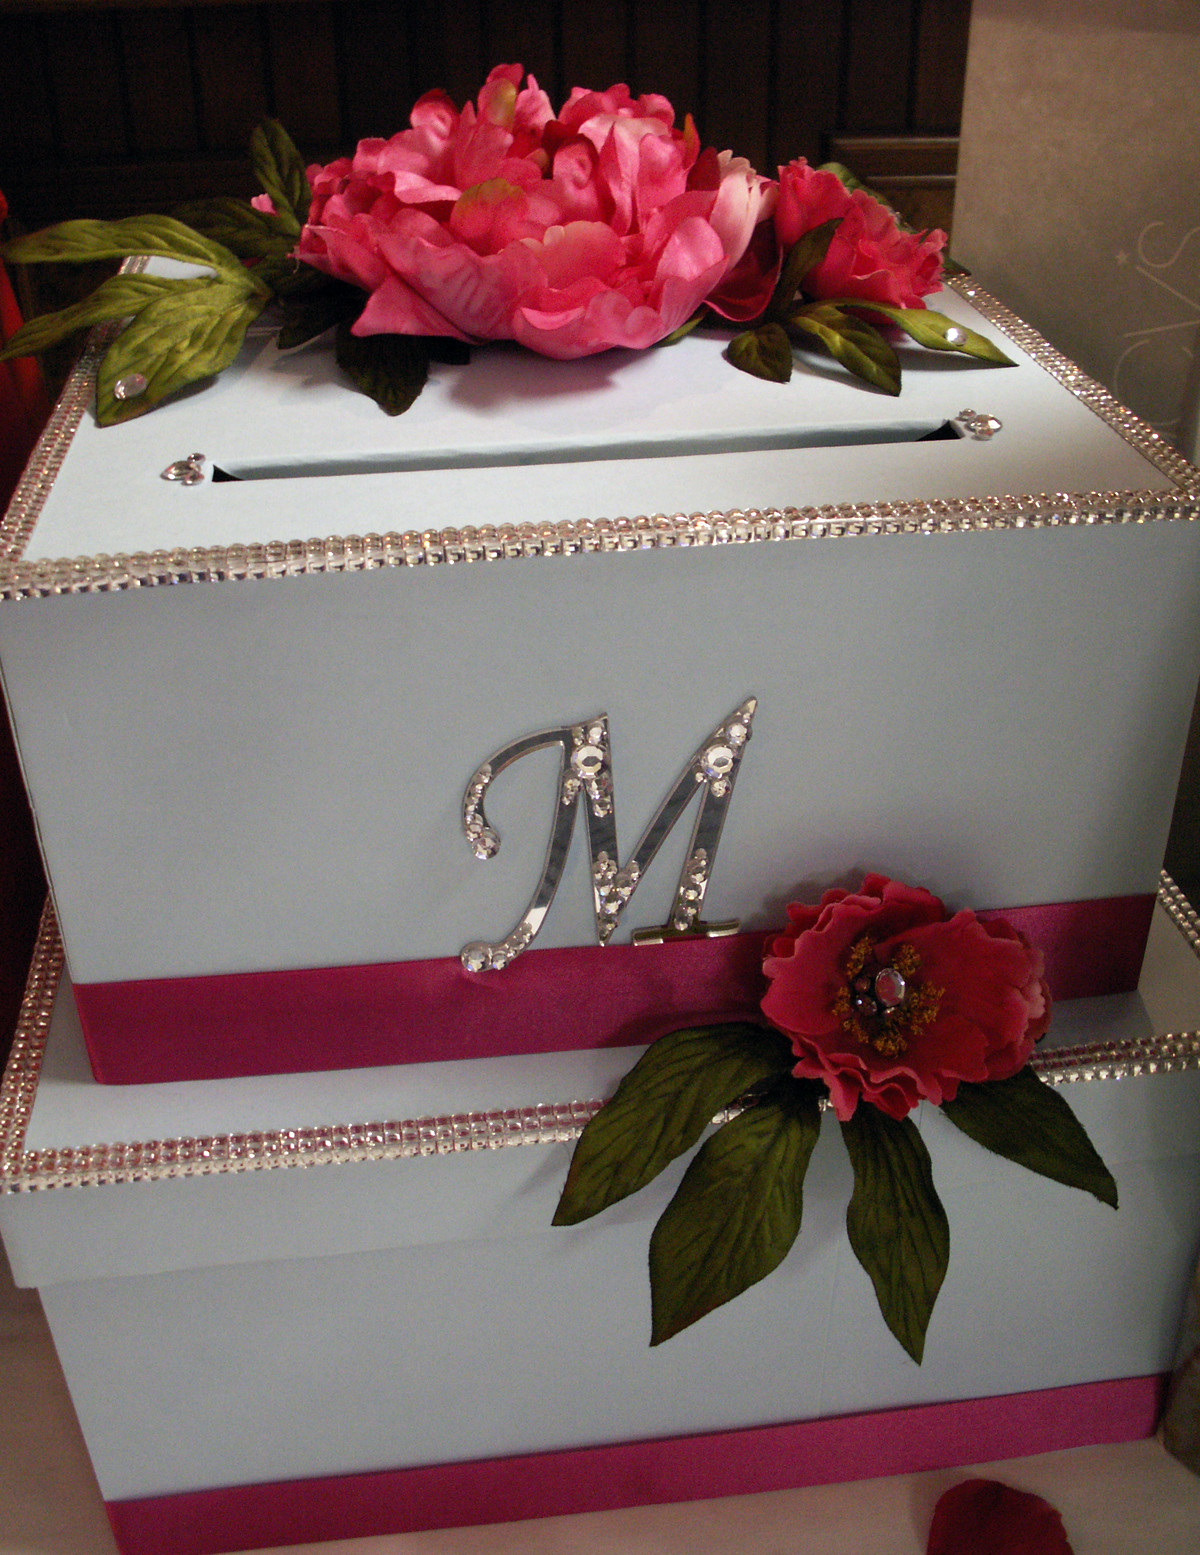 Best ideas about Wedding Gift Card Boxes Ideas . Save or Pin DIY Wedding Card Box Project Now.